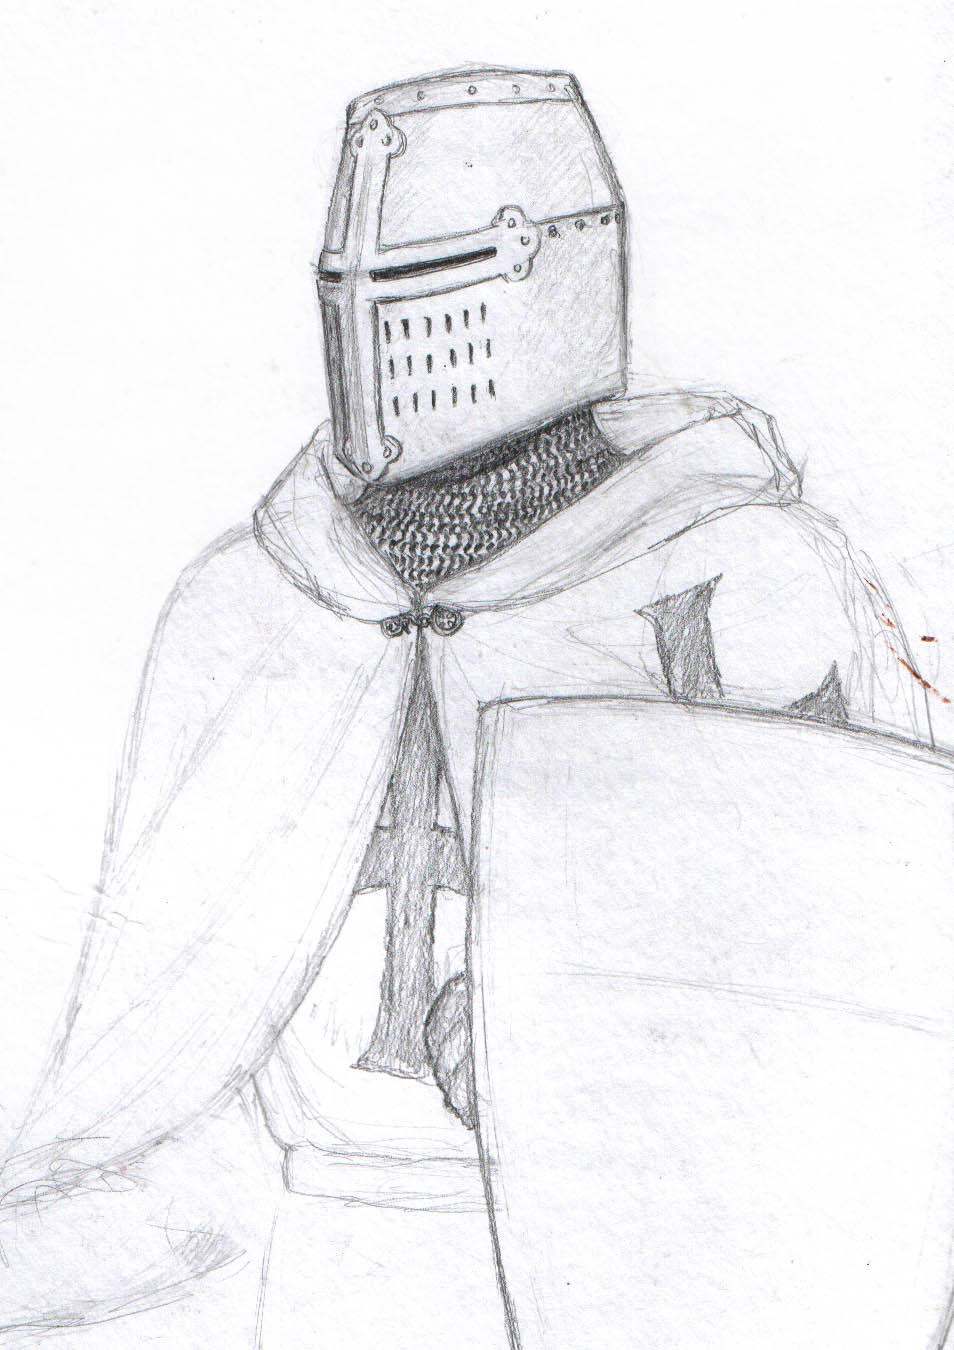 templar sketch by dashinvaine on DeviantArt